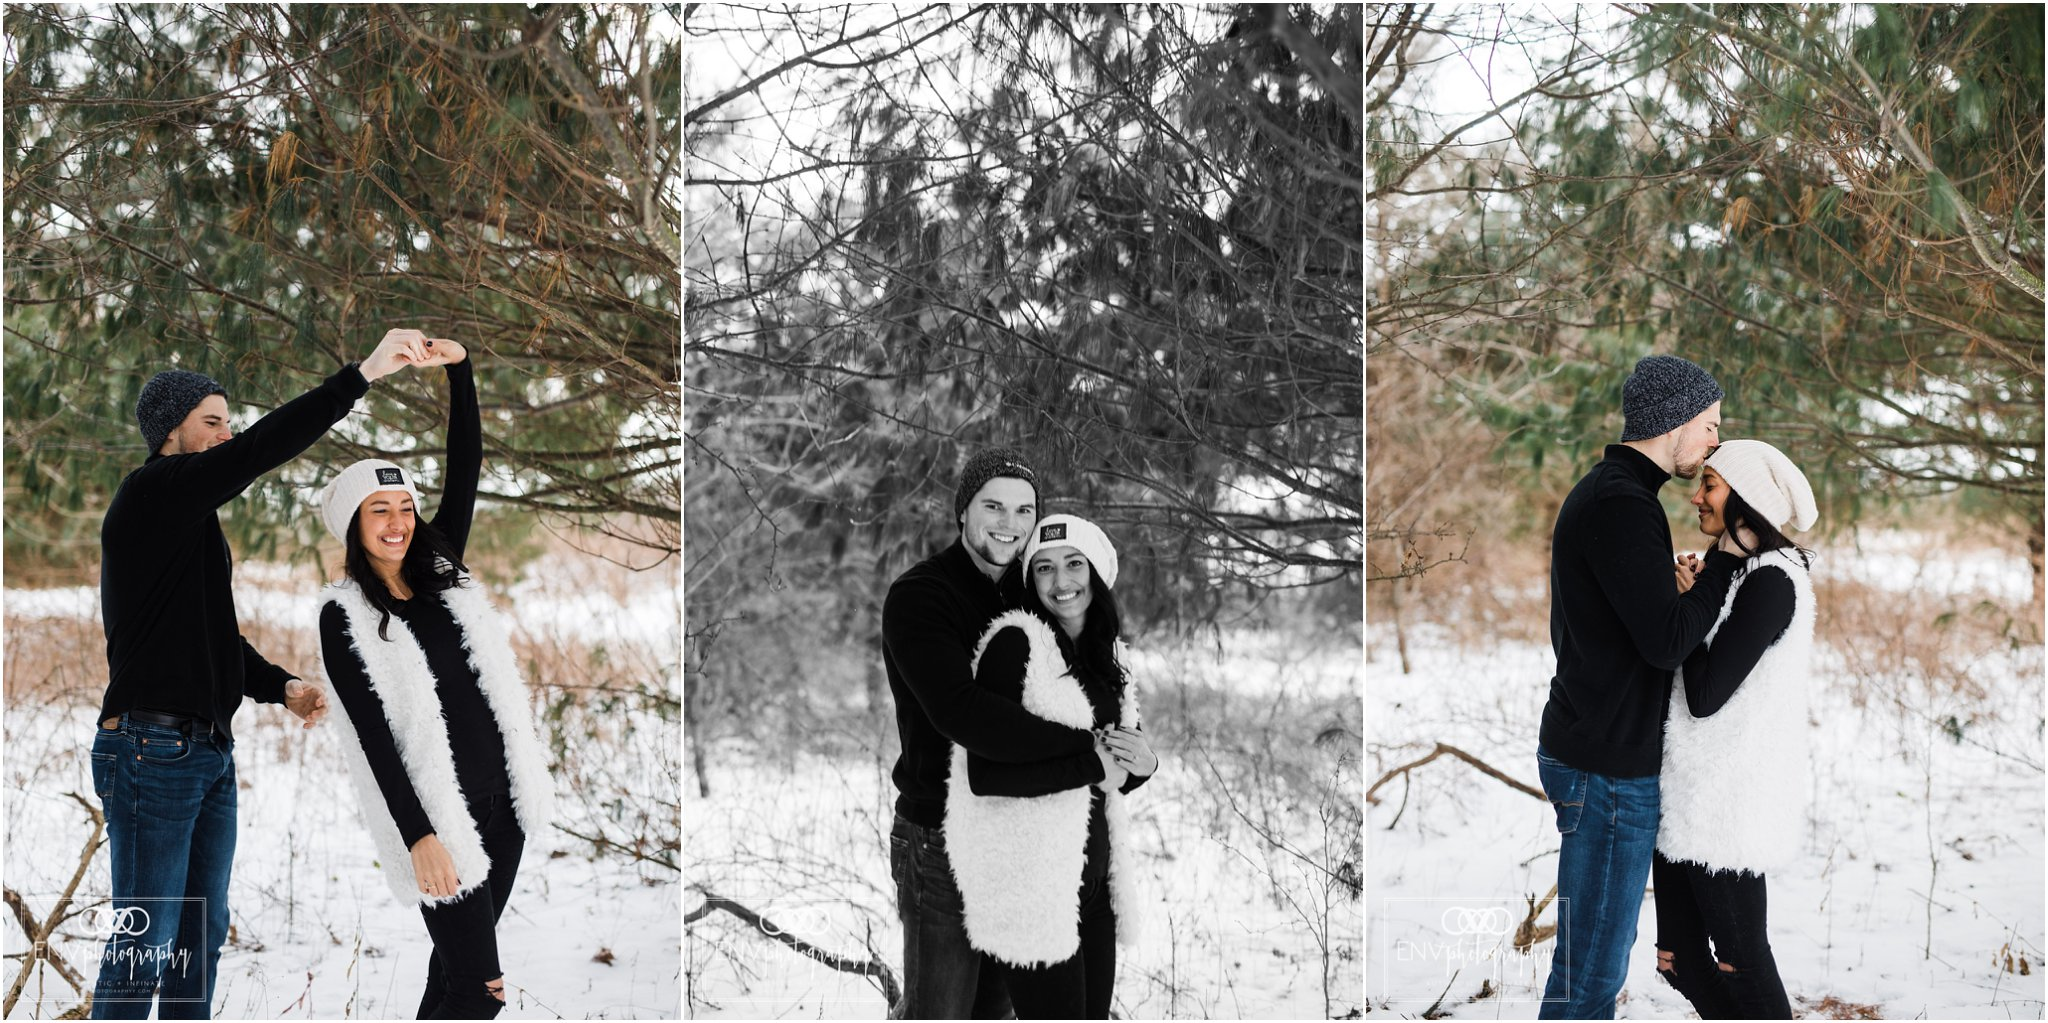 columbus ohio mount vernon ohio winter snowy family engagement photography (15).jpg